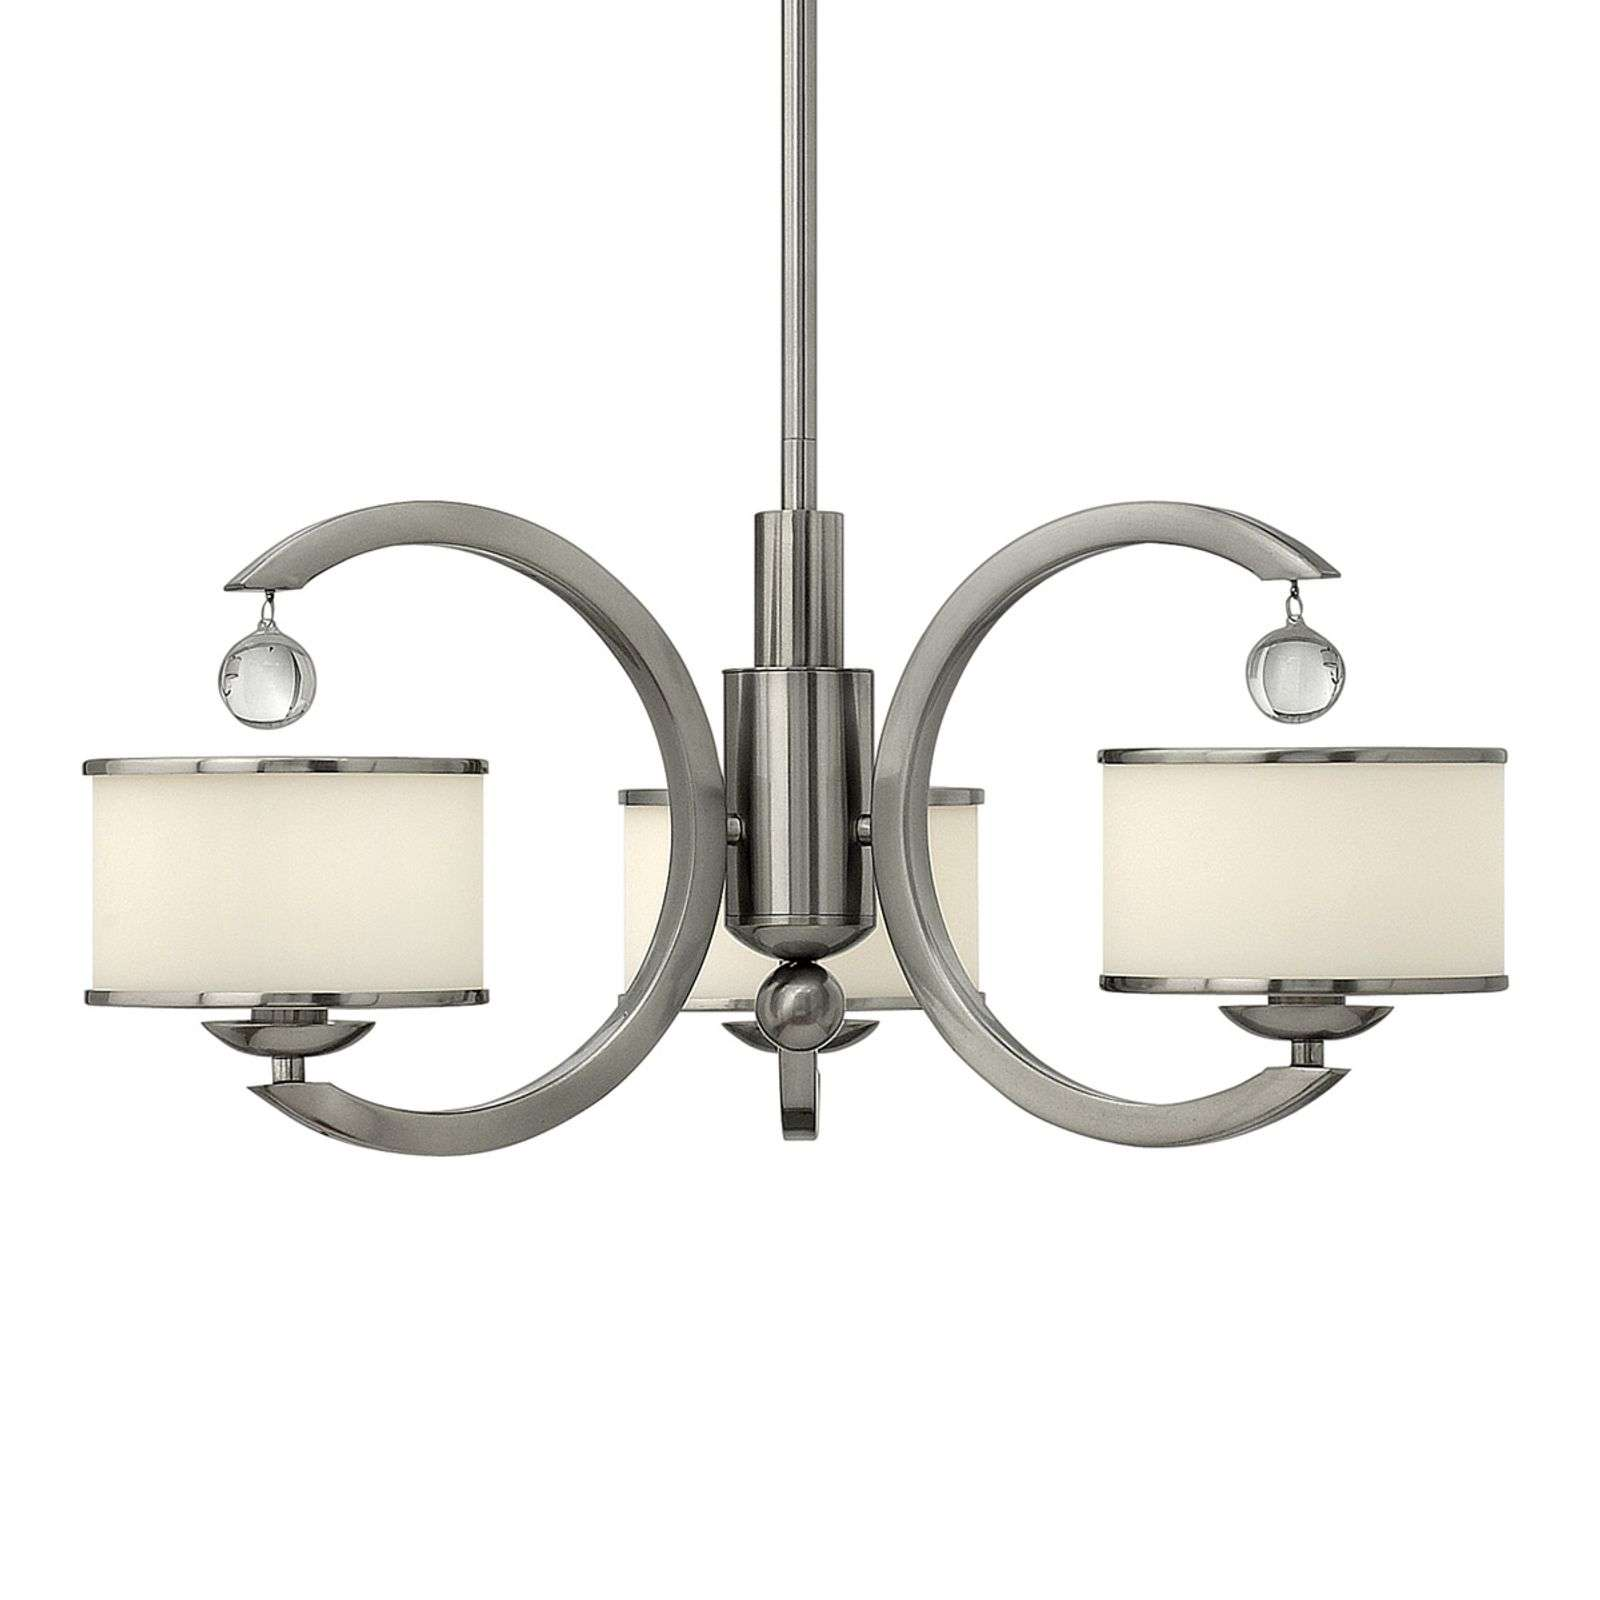 Suspension moderne à 3 lampes MONACO nickel